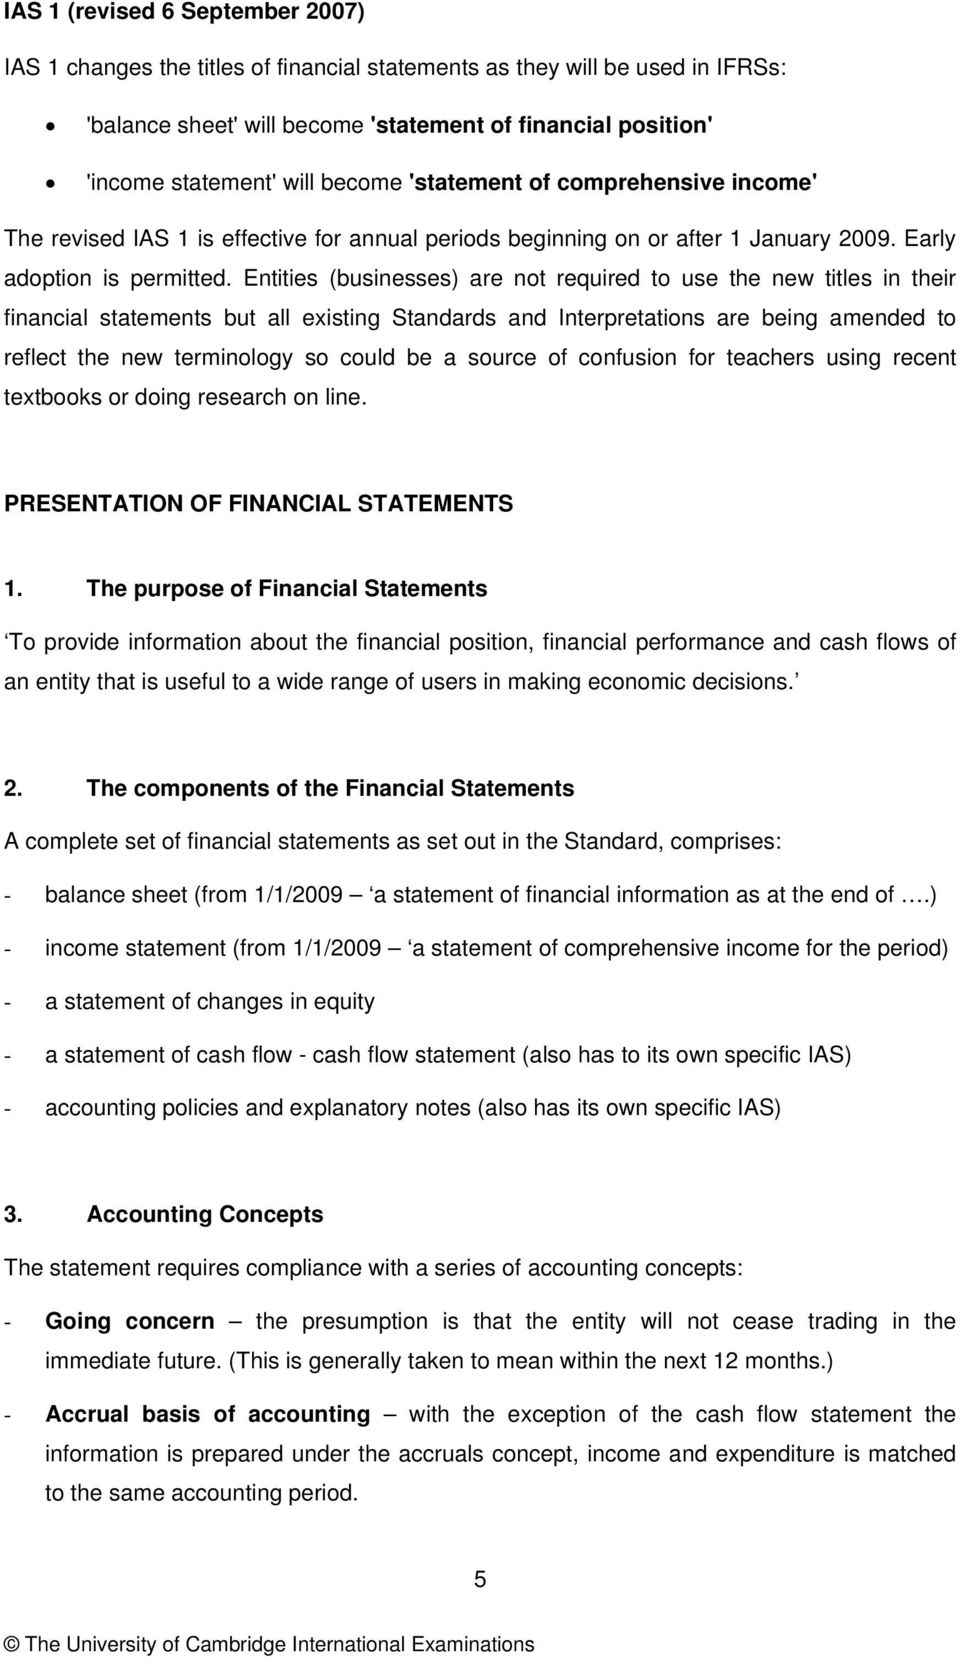 Entities (businesses) are not required to use the new titles in their financial statements but all existing Standards and Interpretations are being amended to reflect the new terminology so could be